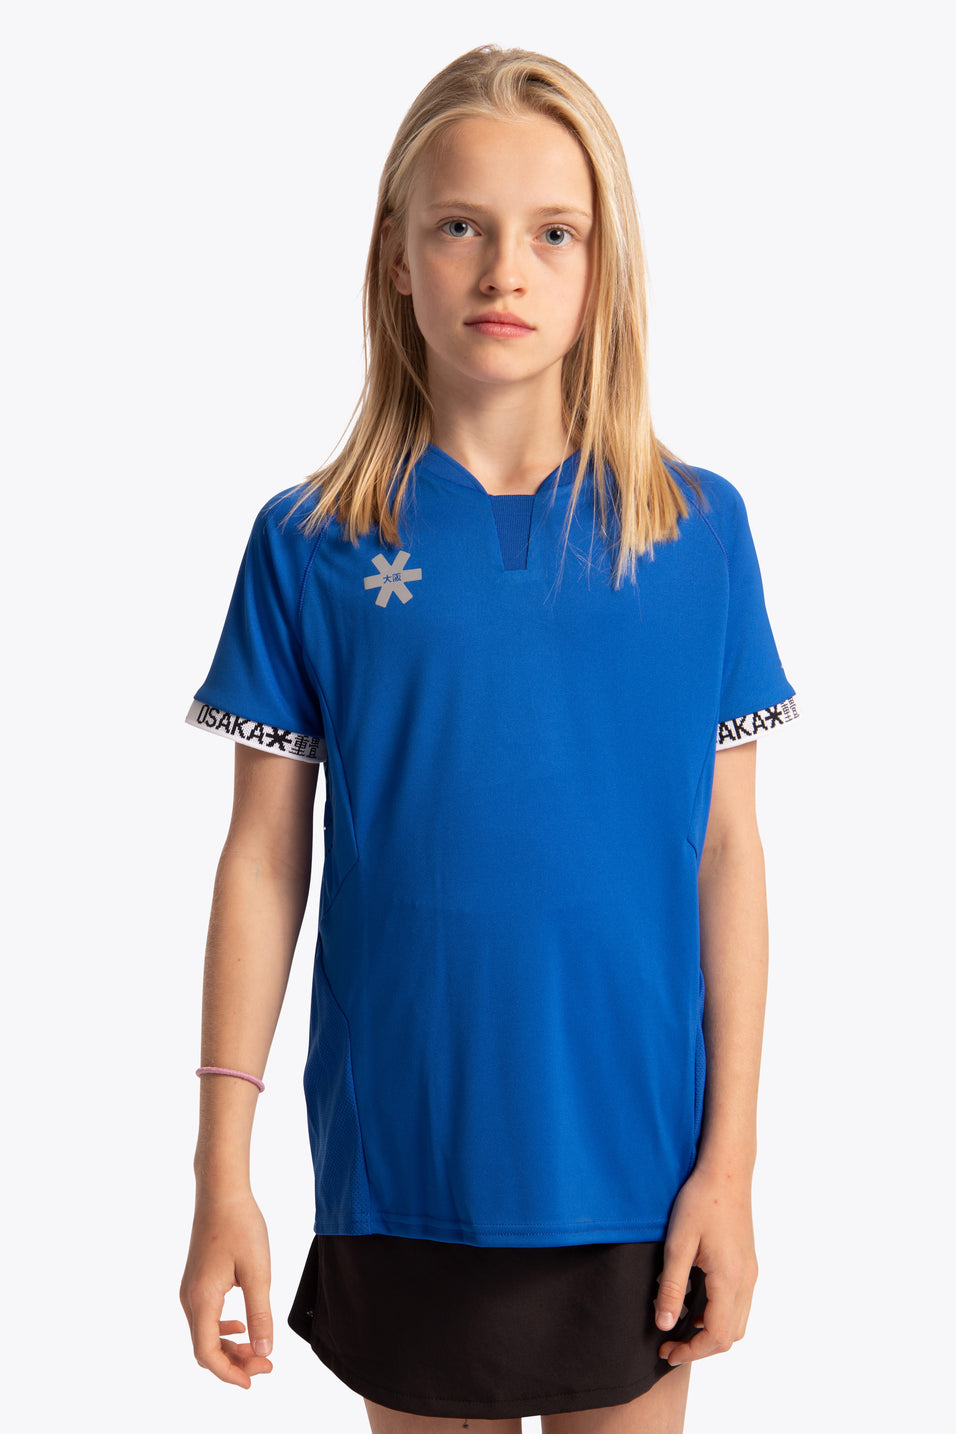 Deshi Jersey - Royal Blue